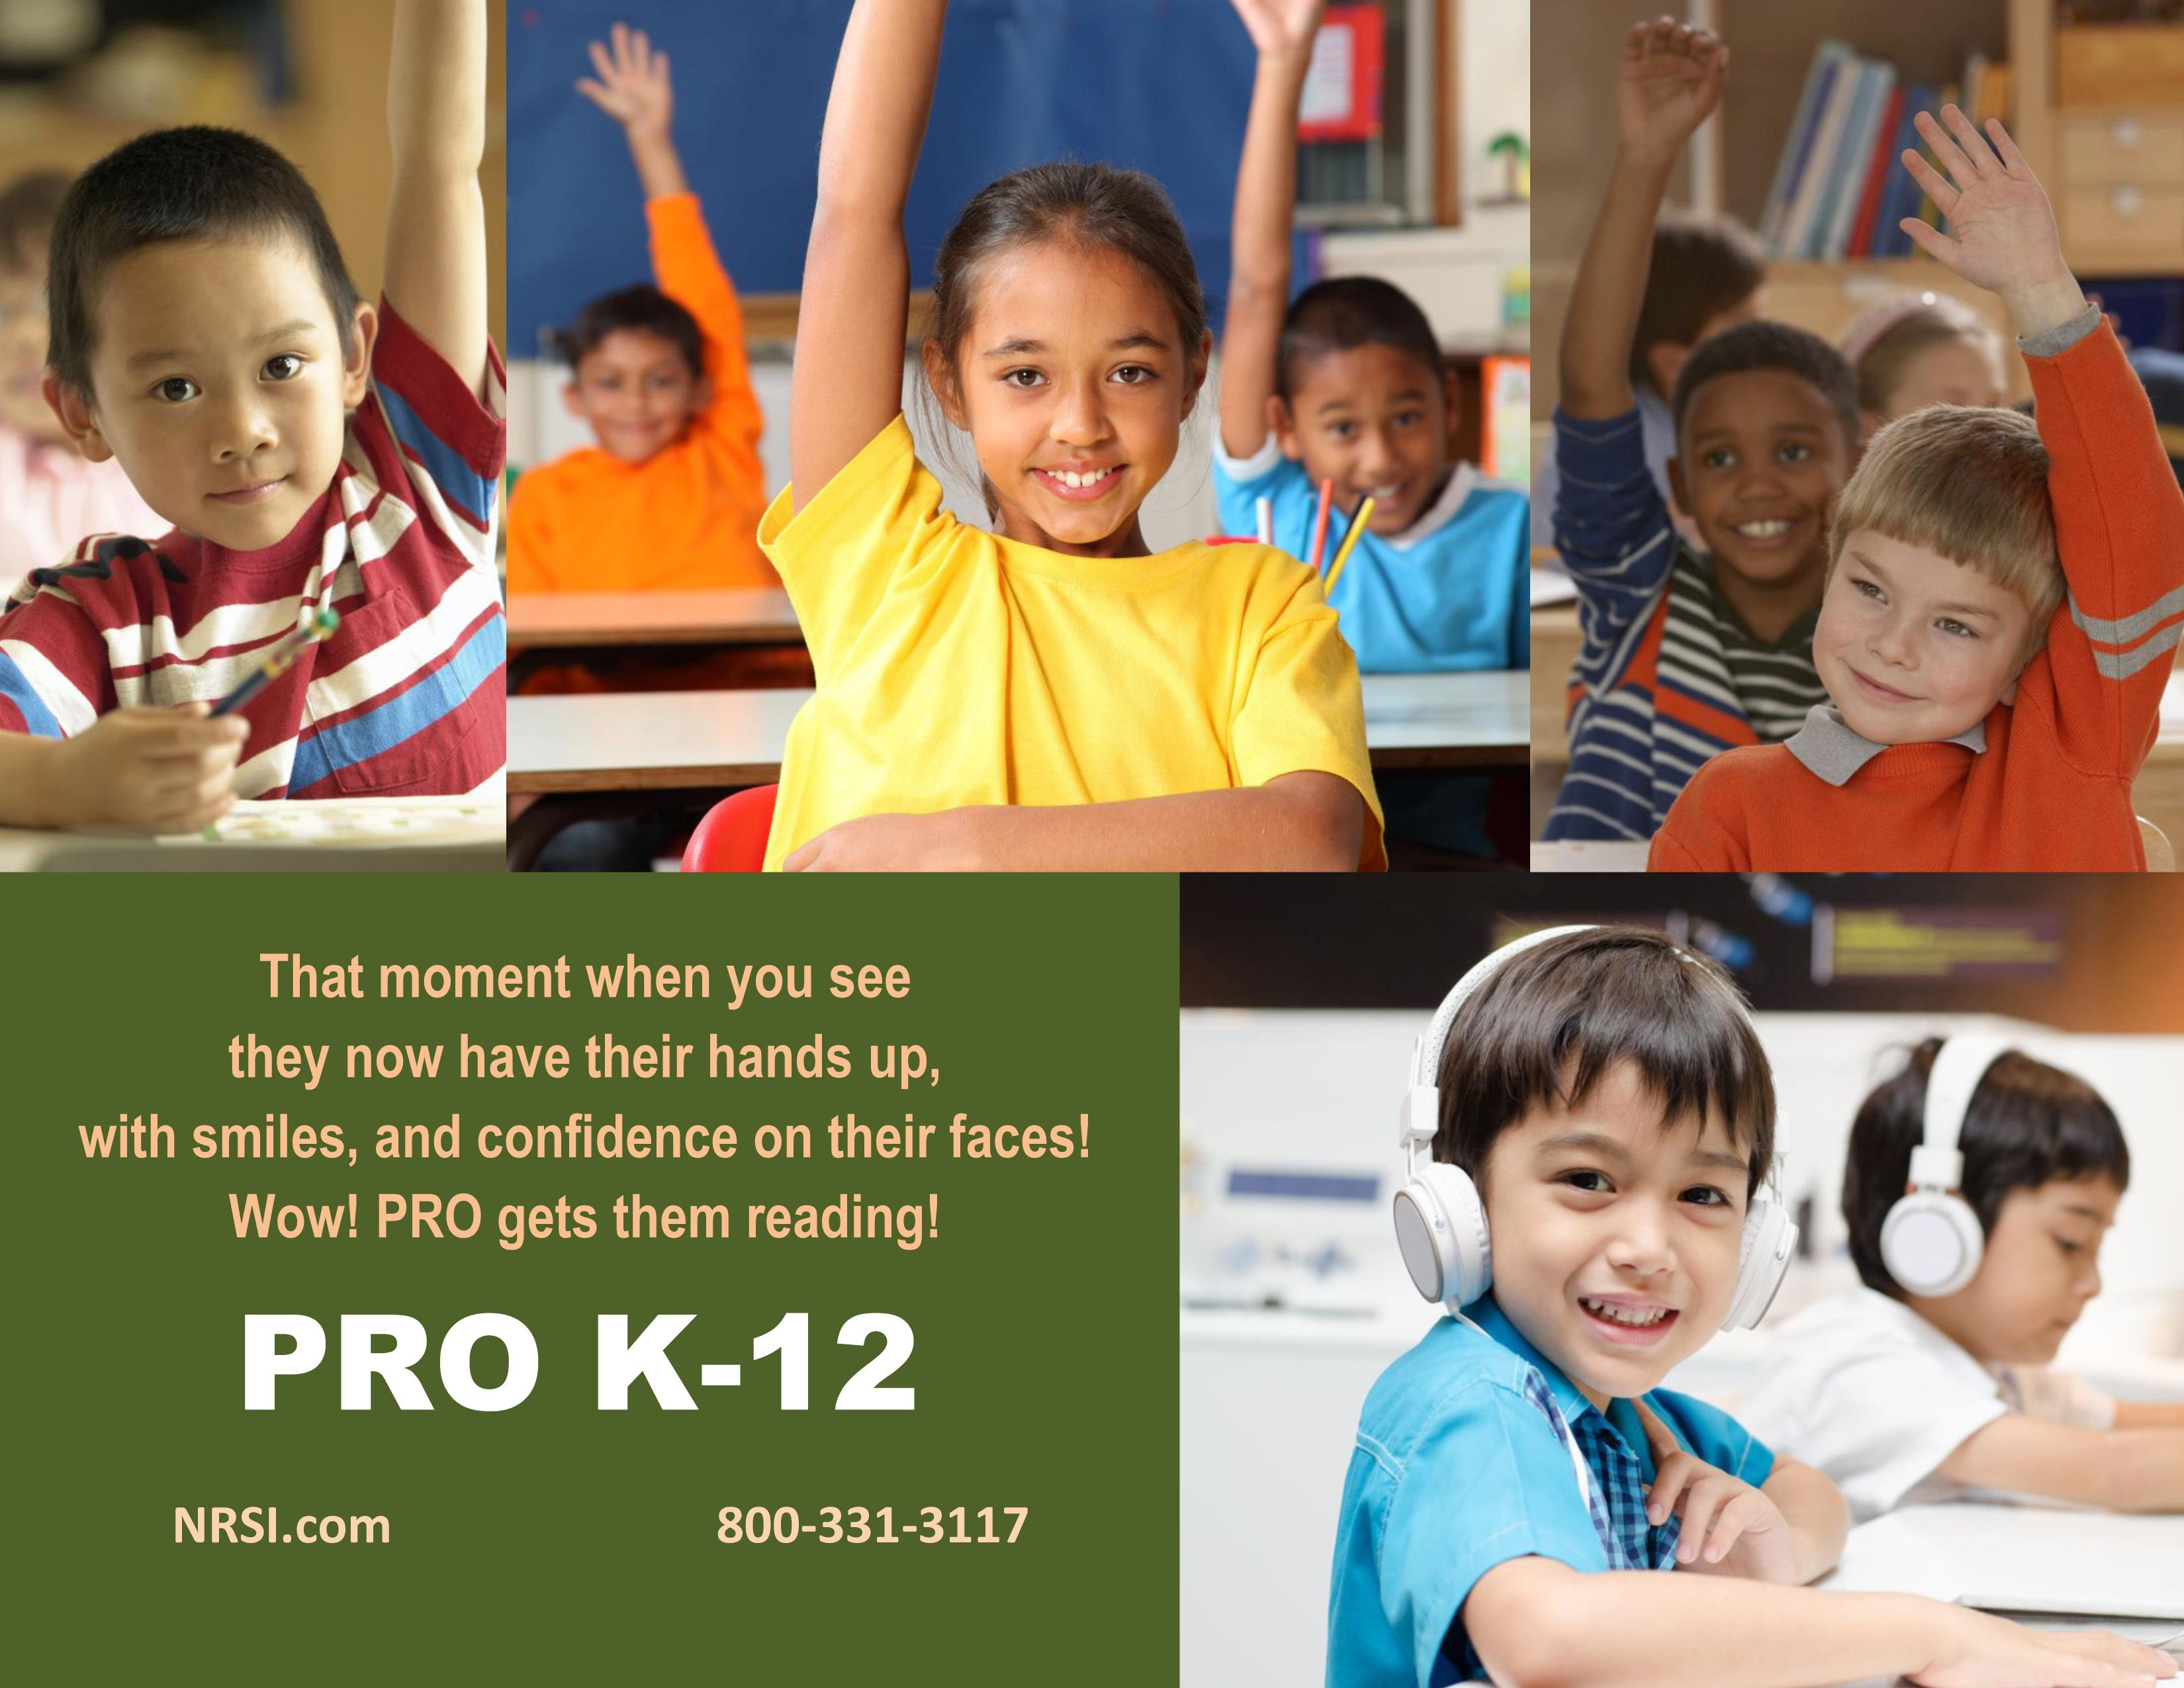 Raise their reading levels & help raise their hands!  PRO K-12 works!  Go to www.nrsi.com to learn more!  Get started today!